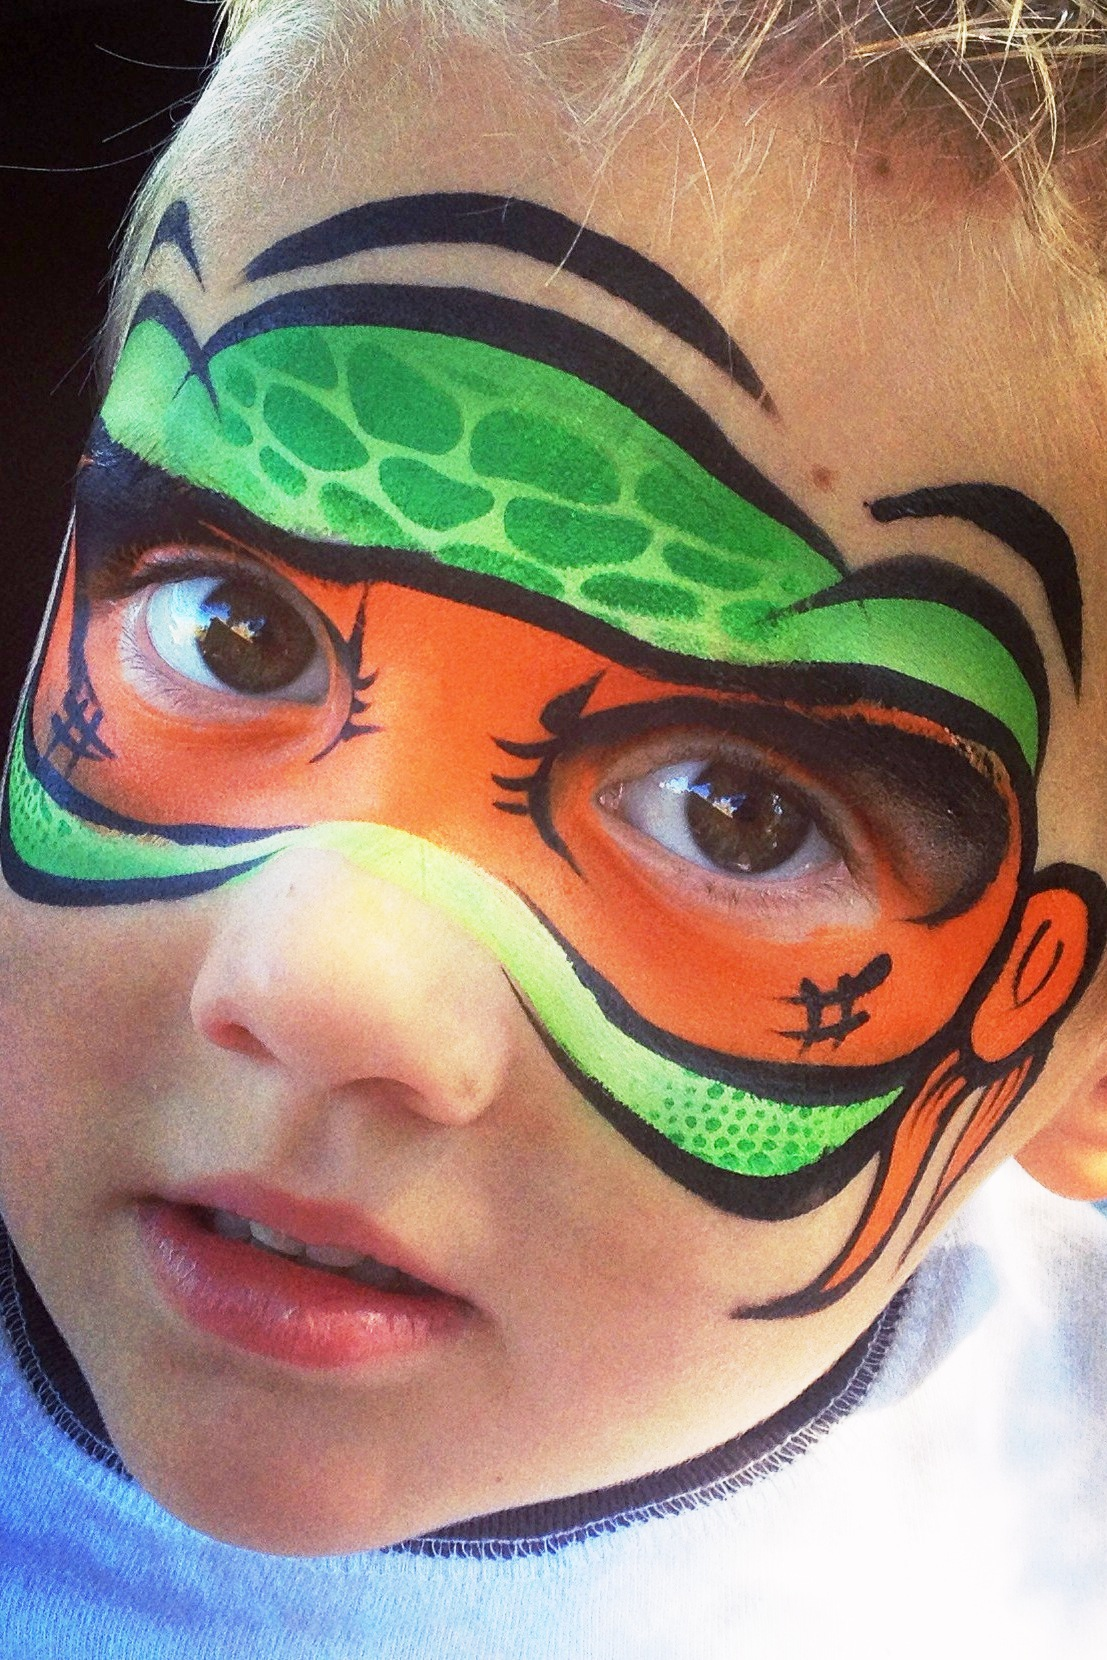 Michelangelo TMNT mask, Face Painting, Ninja Turtles, Yuba City face painter, Yuba. Sutter, Colusa, Butte, California, Orange mask, blue mask, purple mask, red mask